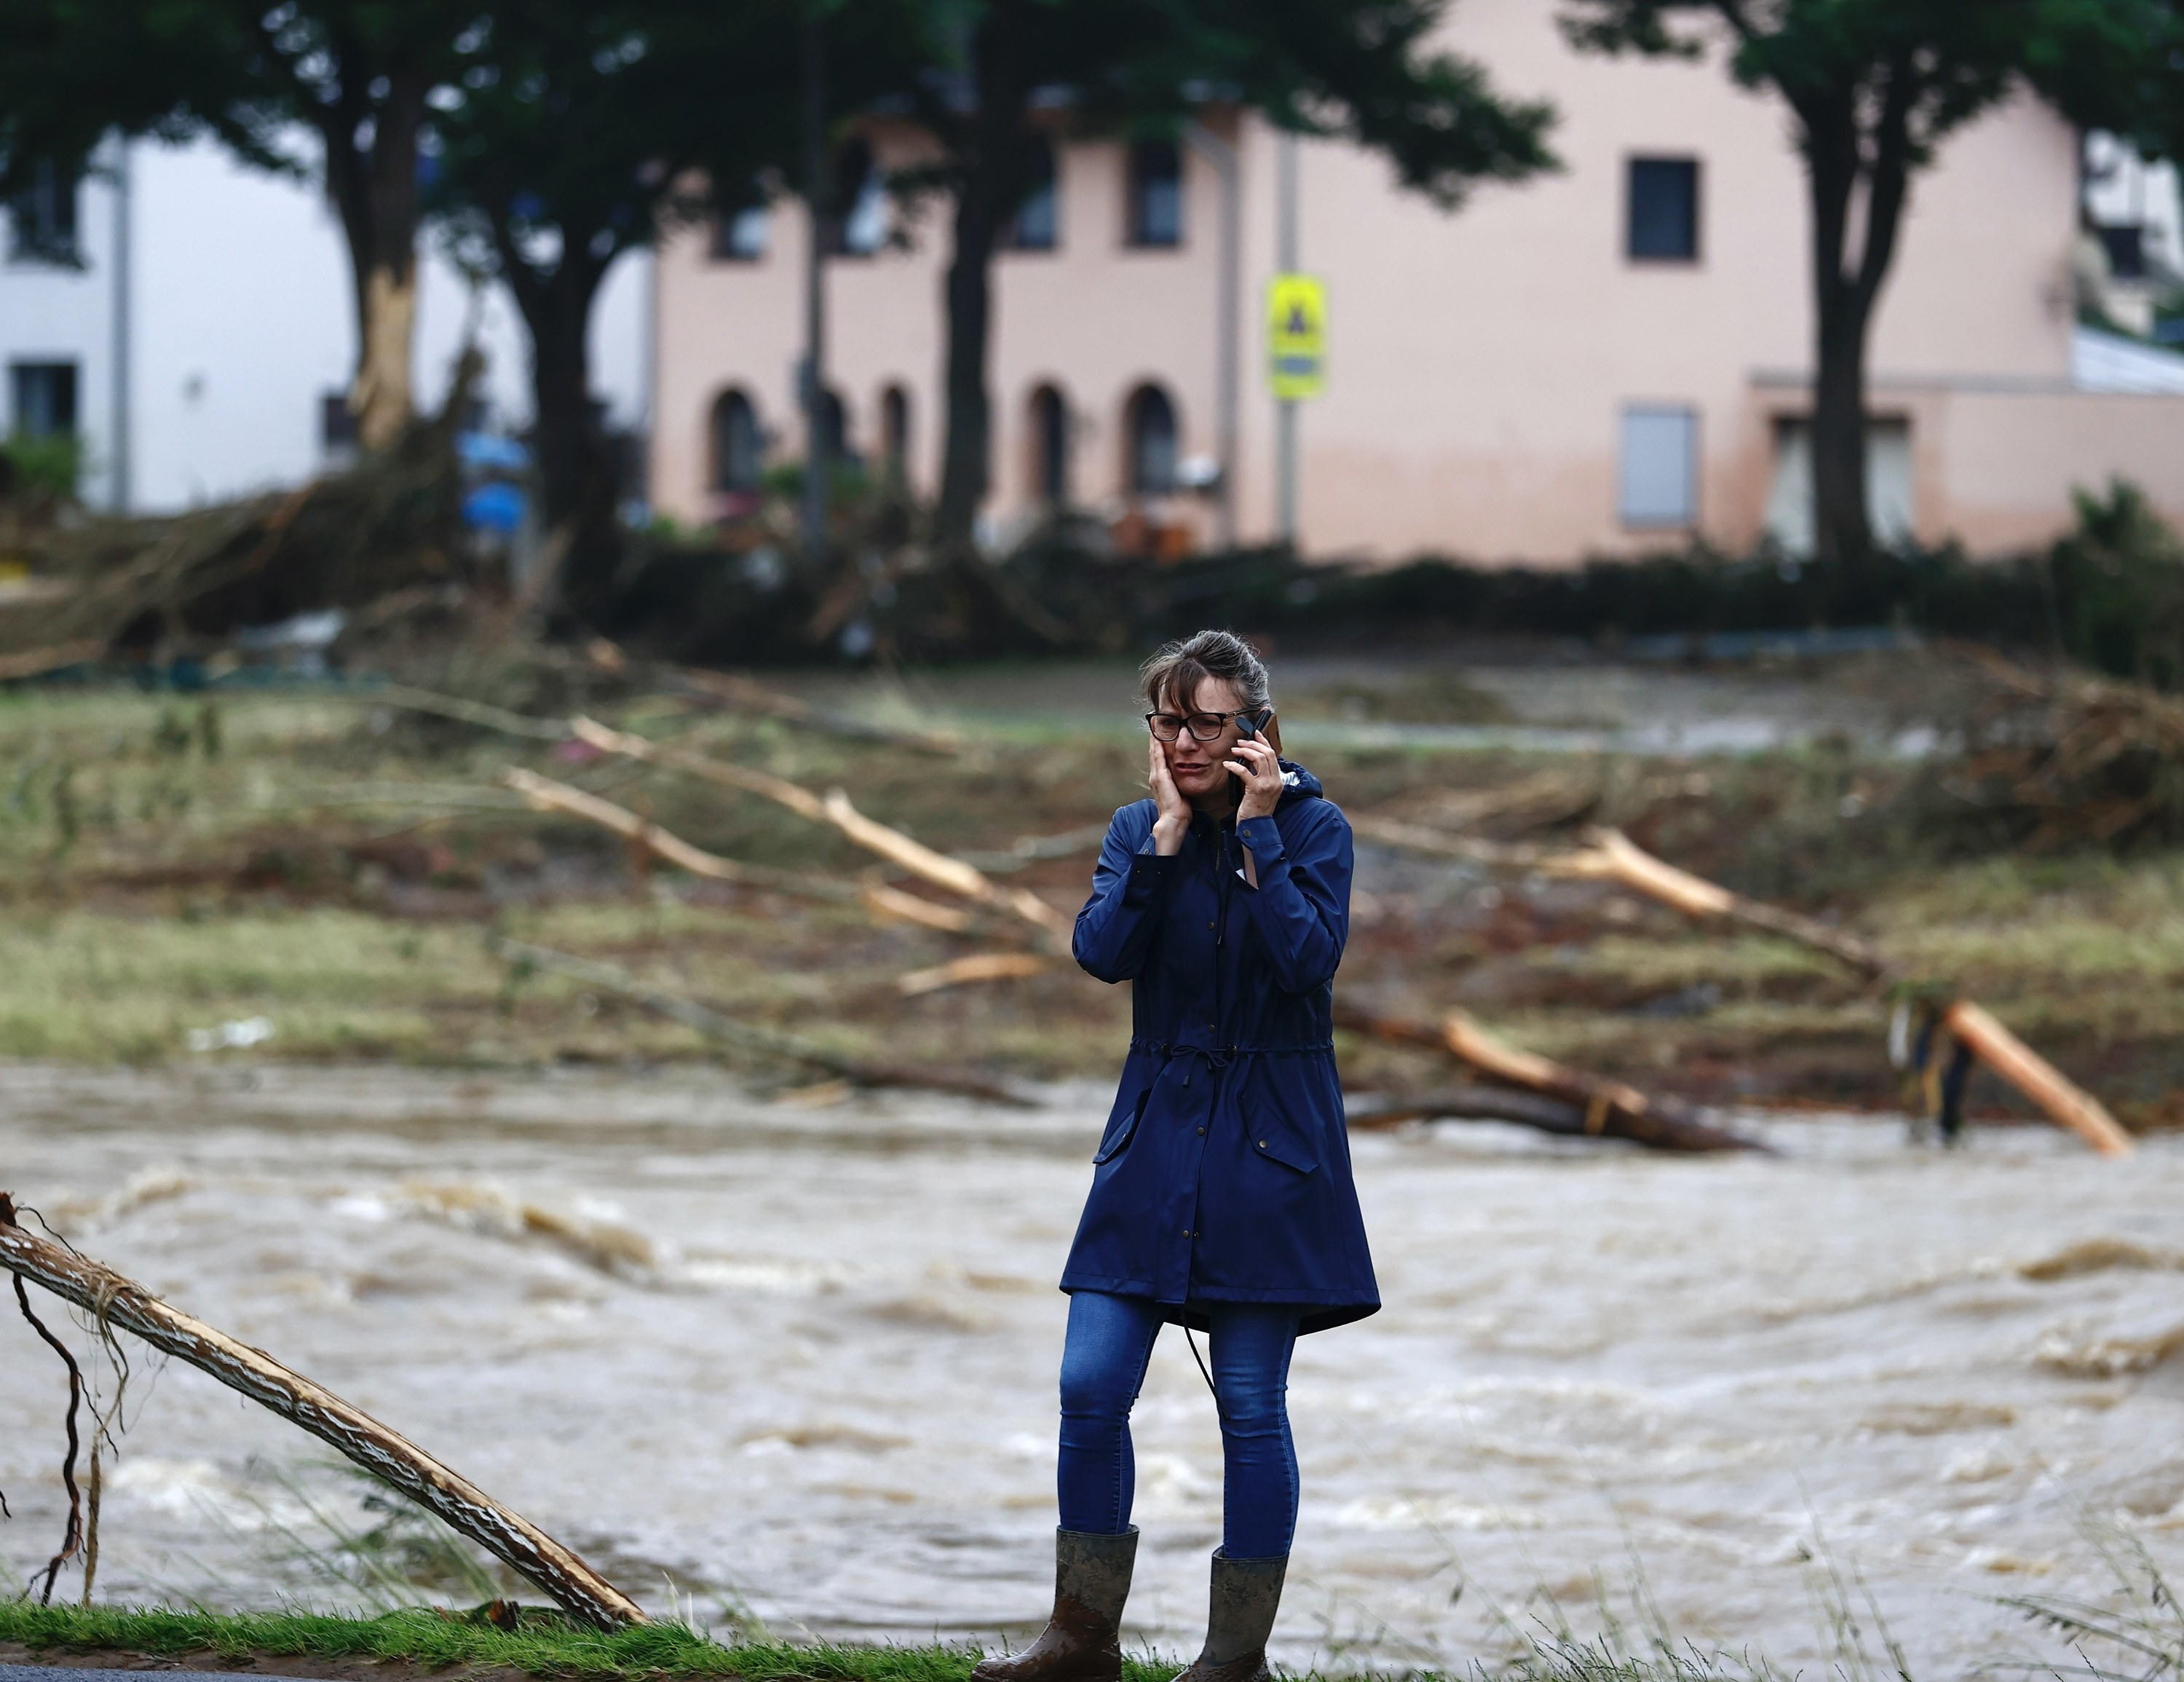 A woman on the phone looking worried with floodwaters in the background